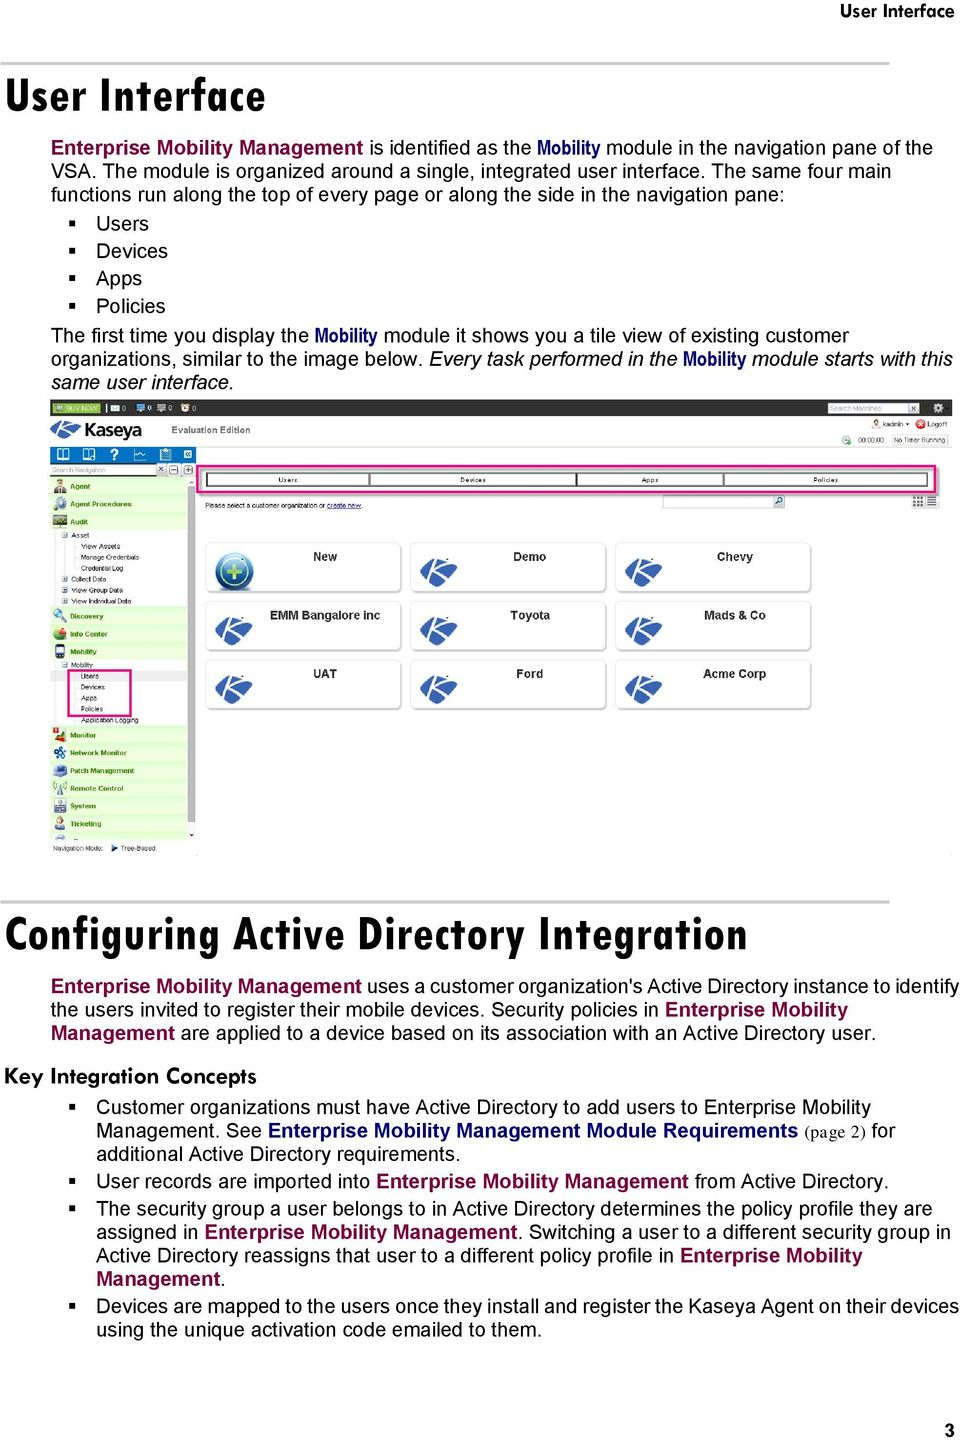 view of existing customer organizations, similar to the image below. Every task performed in the Mobility module starts with this same user interface.